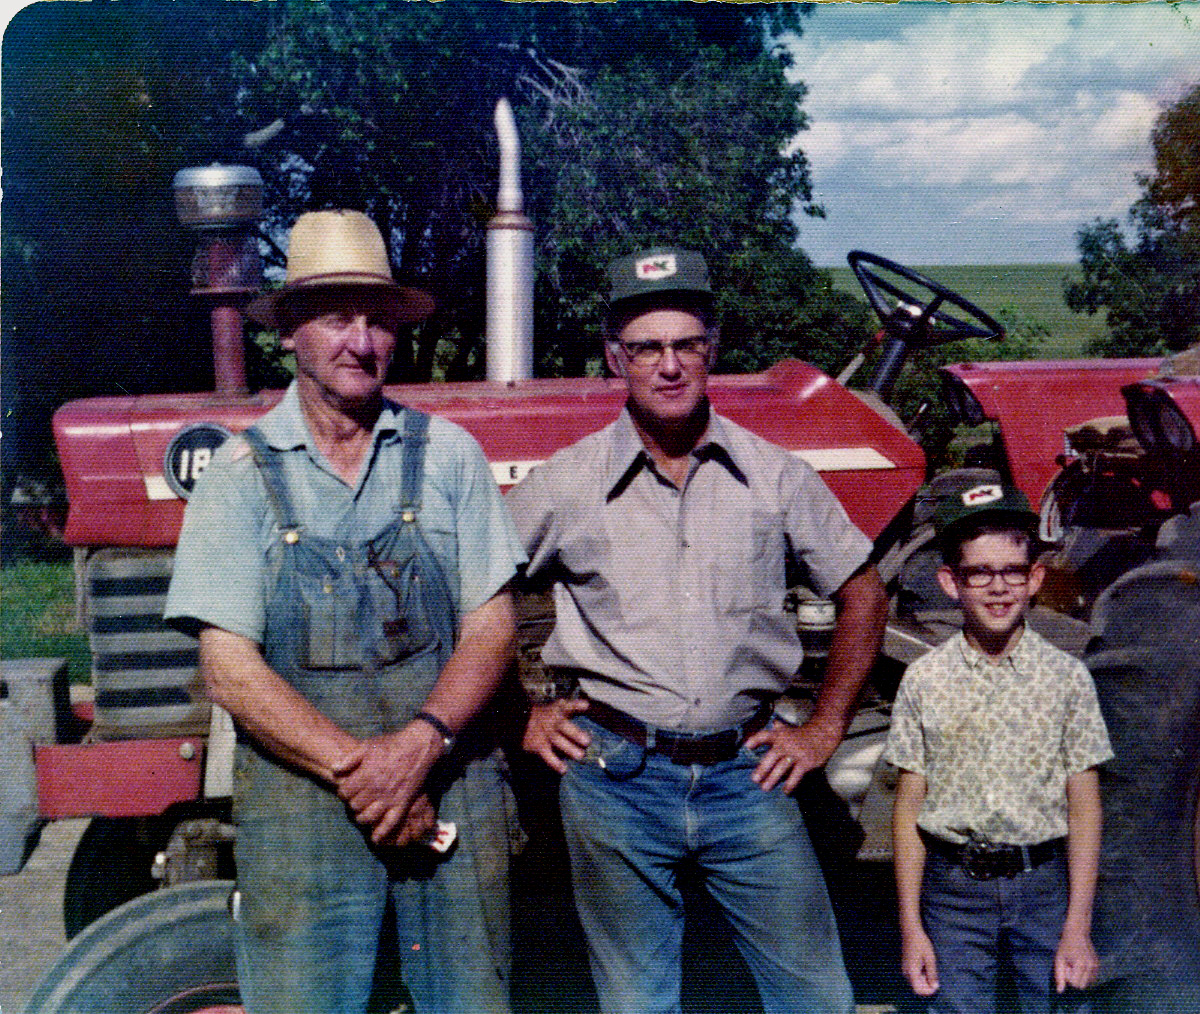 Grandpa, Dad, and Me (1974)